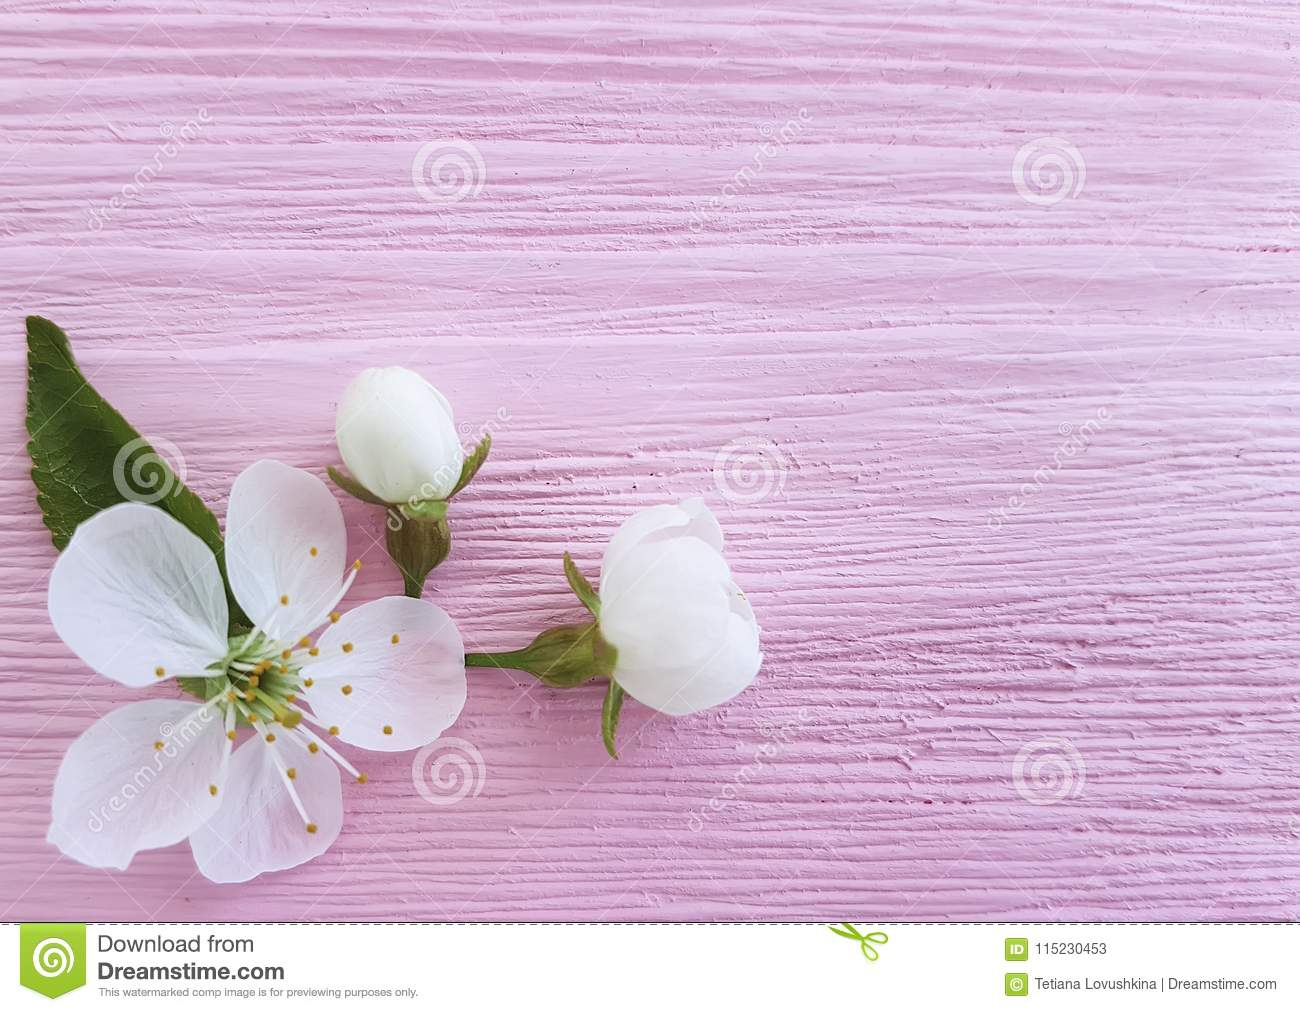 Cherry beauty blossom fresh design on a pink wooden background, spring